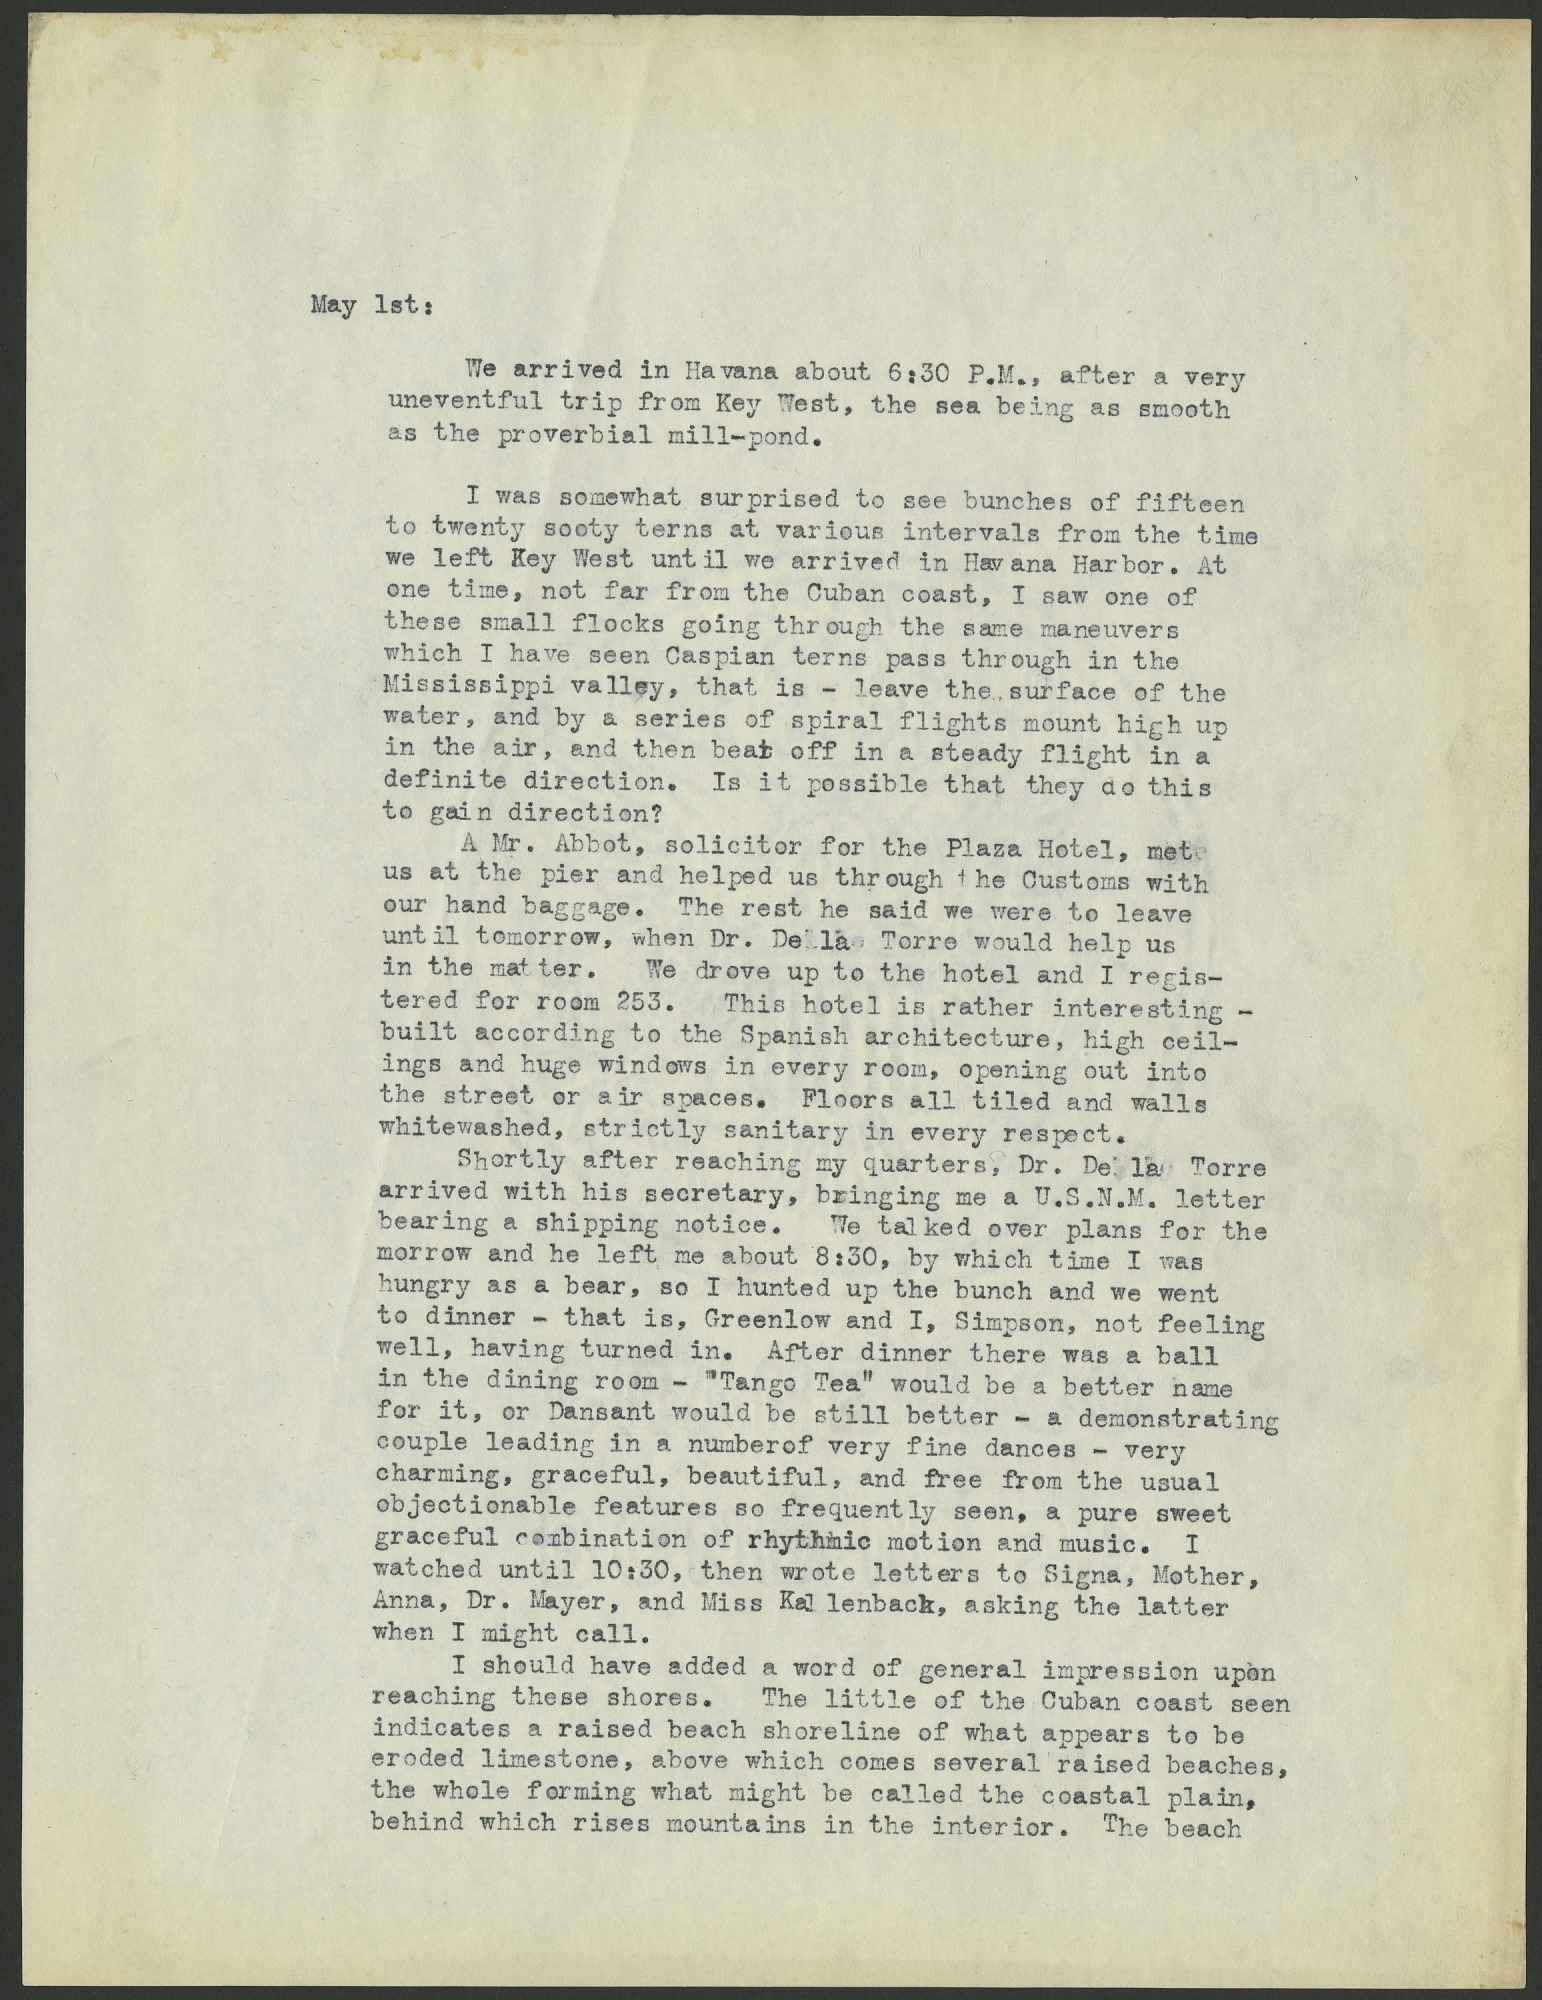 Journal of the Tomas Barrera, May 1-6, 1914, 1914, Smithsonian Field Book Project, SIA RU007089.